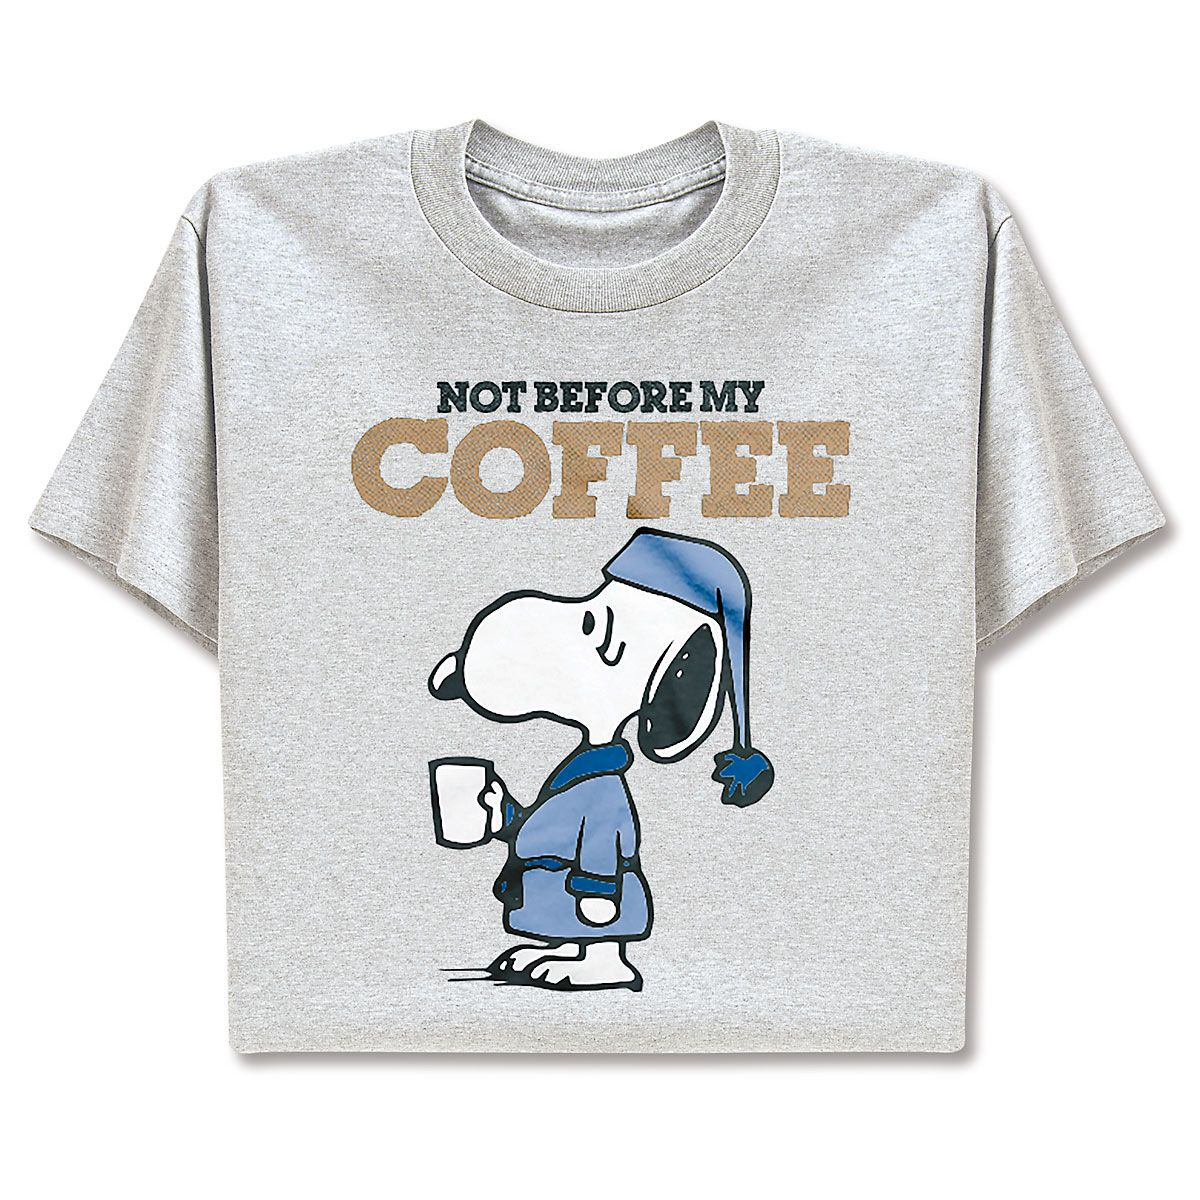 PEANUTS® T-Shirt - Not Before My Coffee - XL